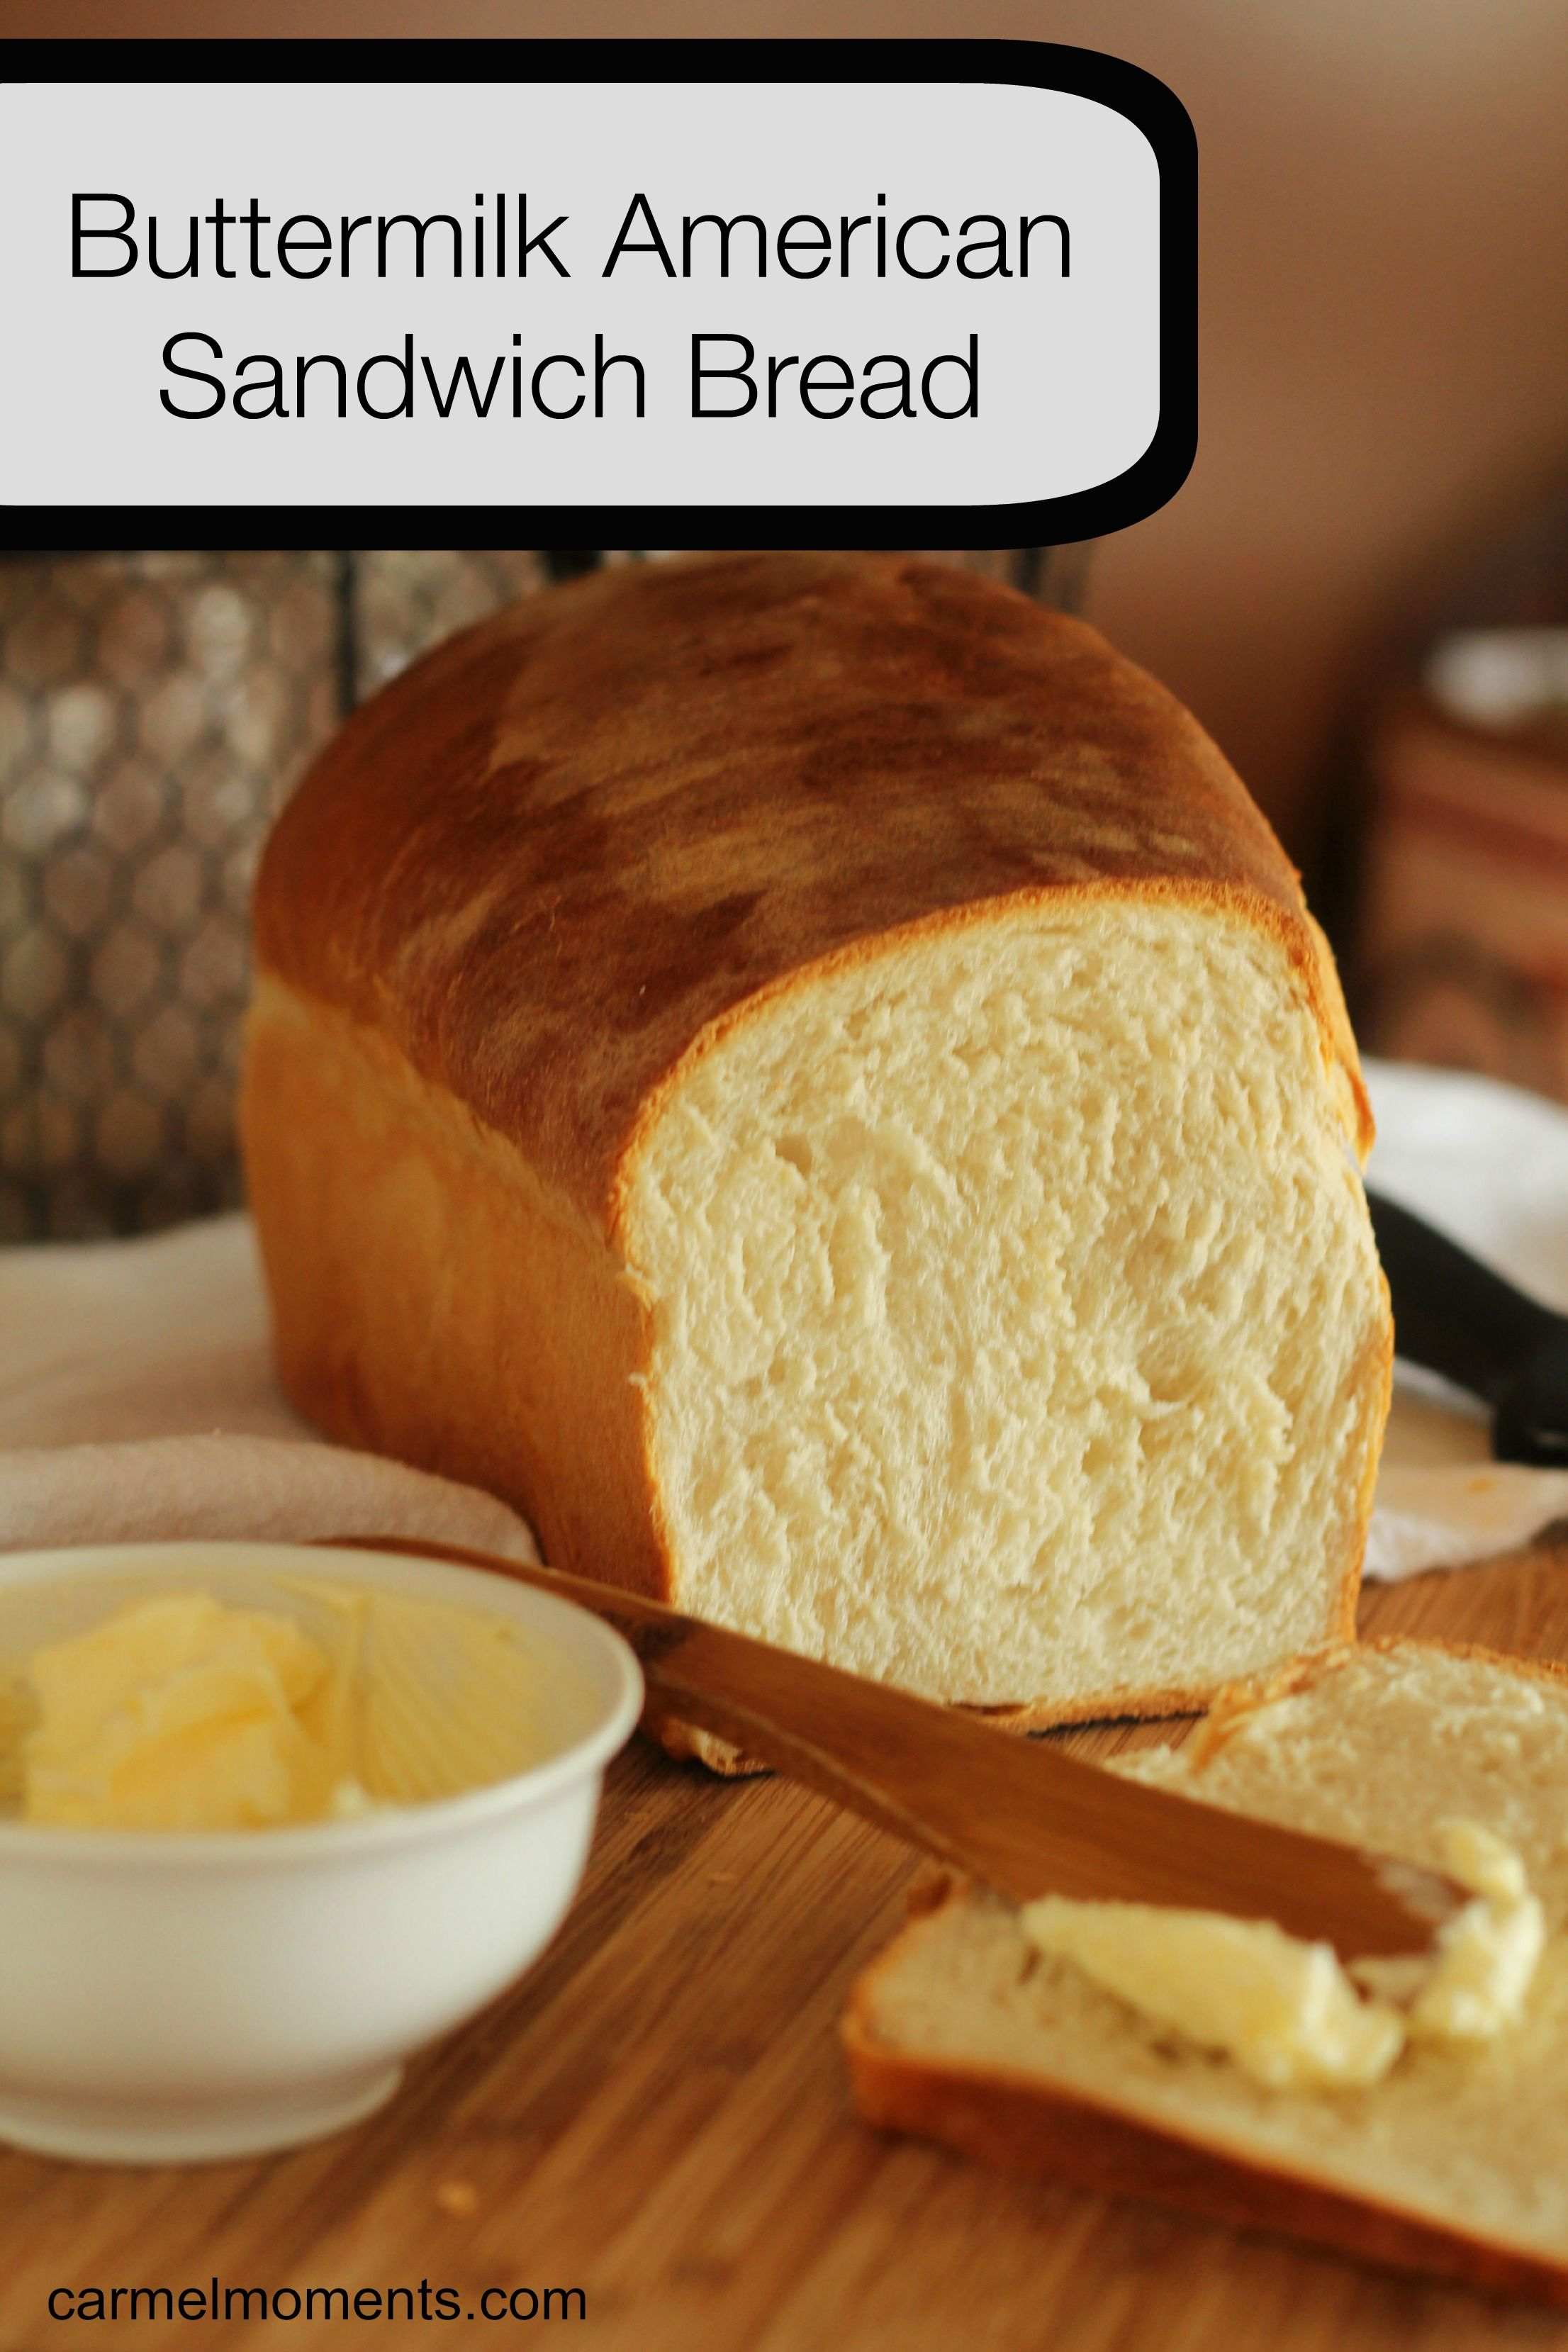 Buttermilk American Sandwich Bread Bread No Yeast Bread Buttermilk Recipes